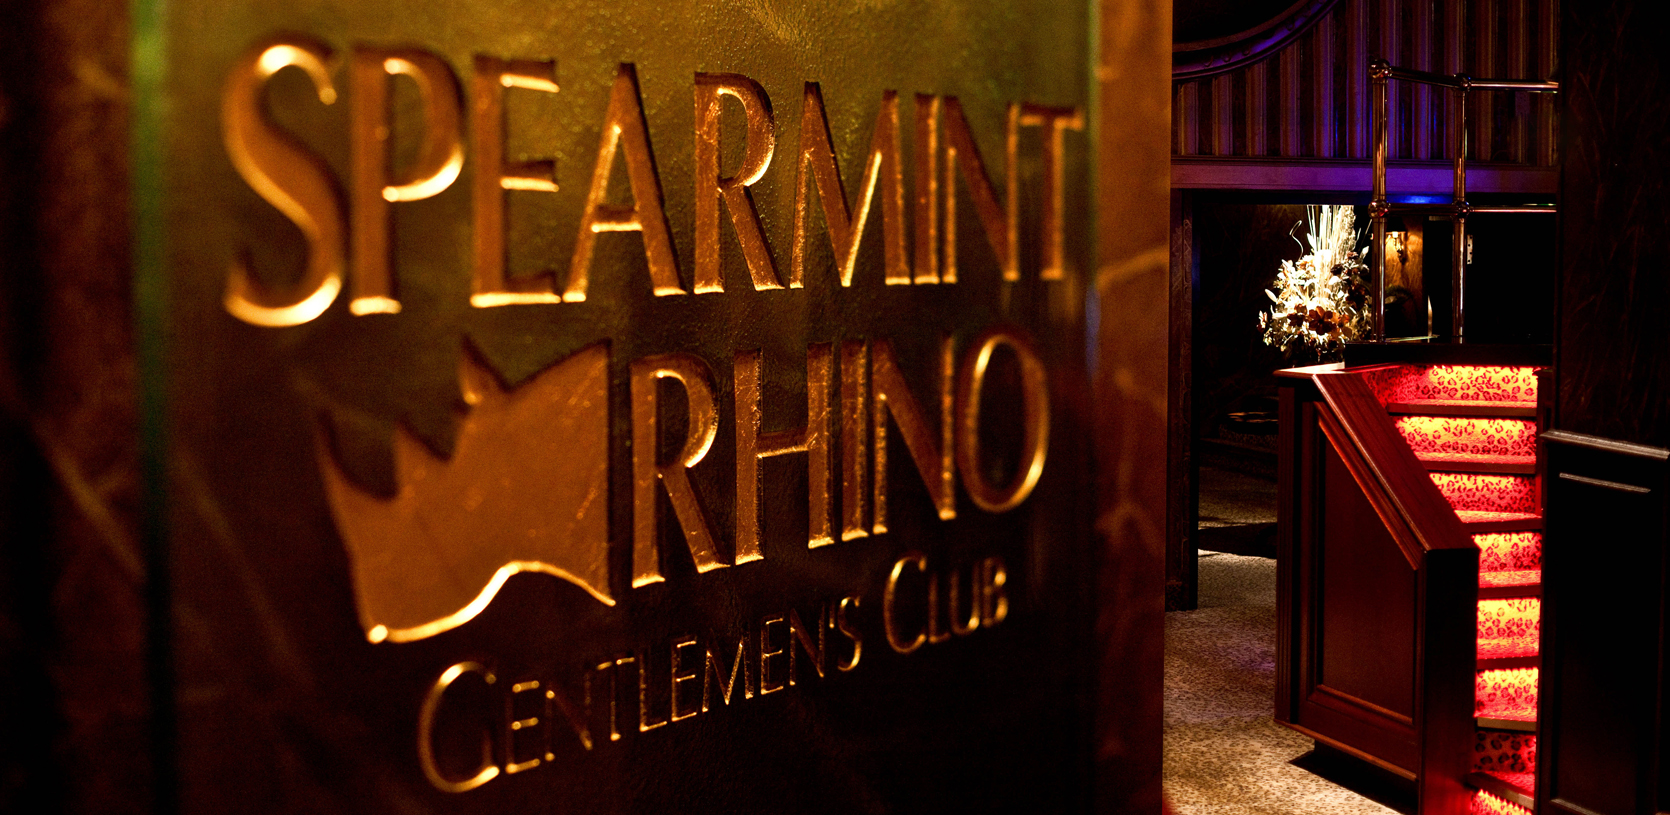 Spearmint Rhino Nightclub Photoshoot